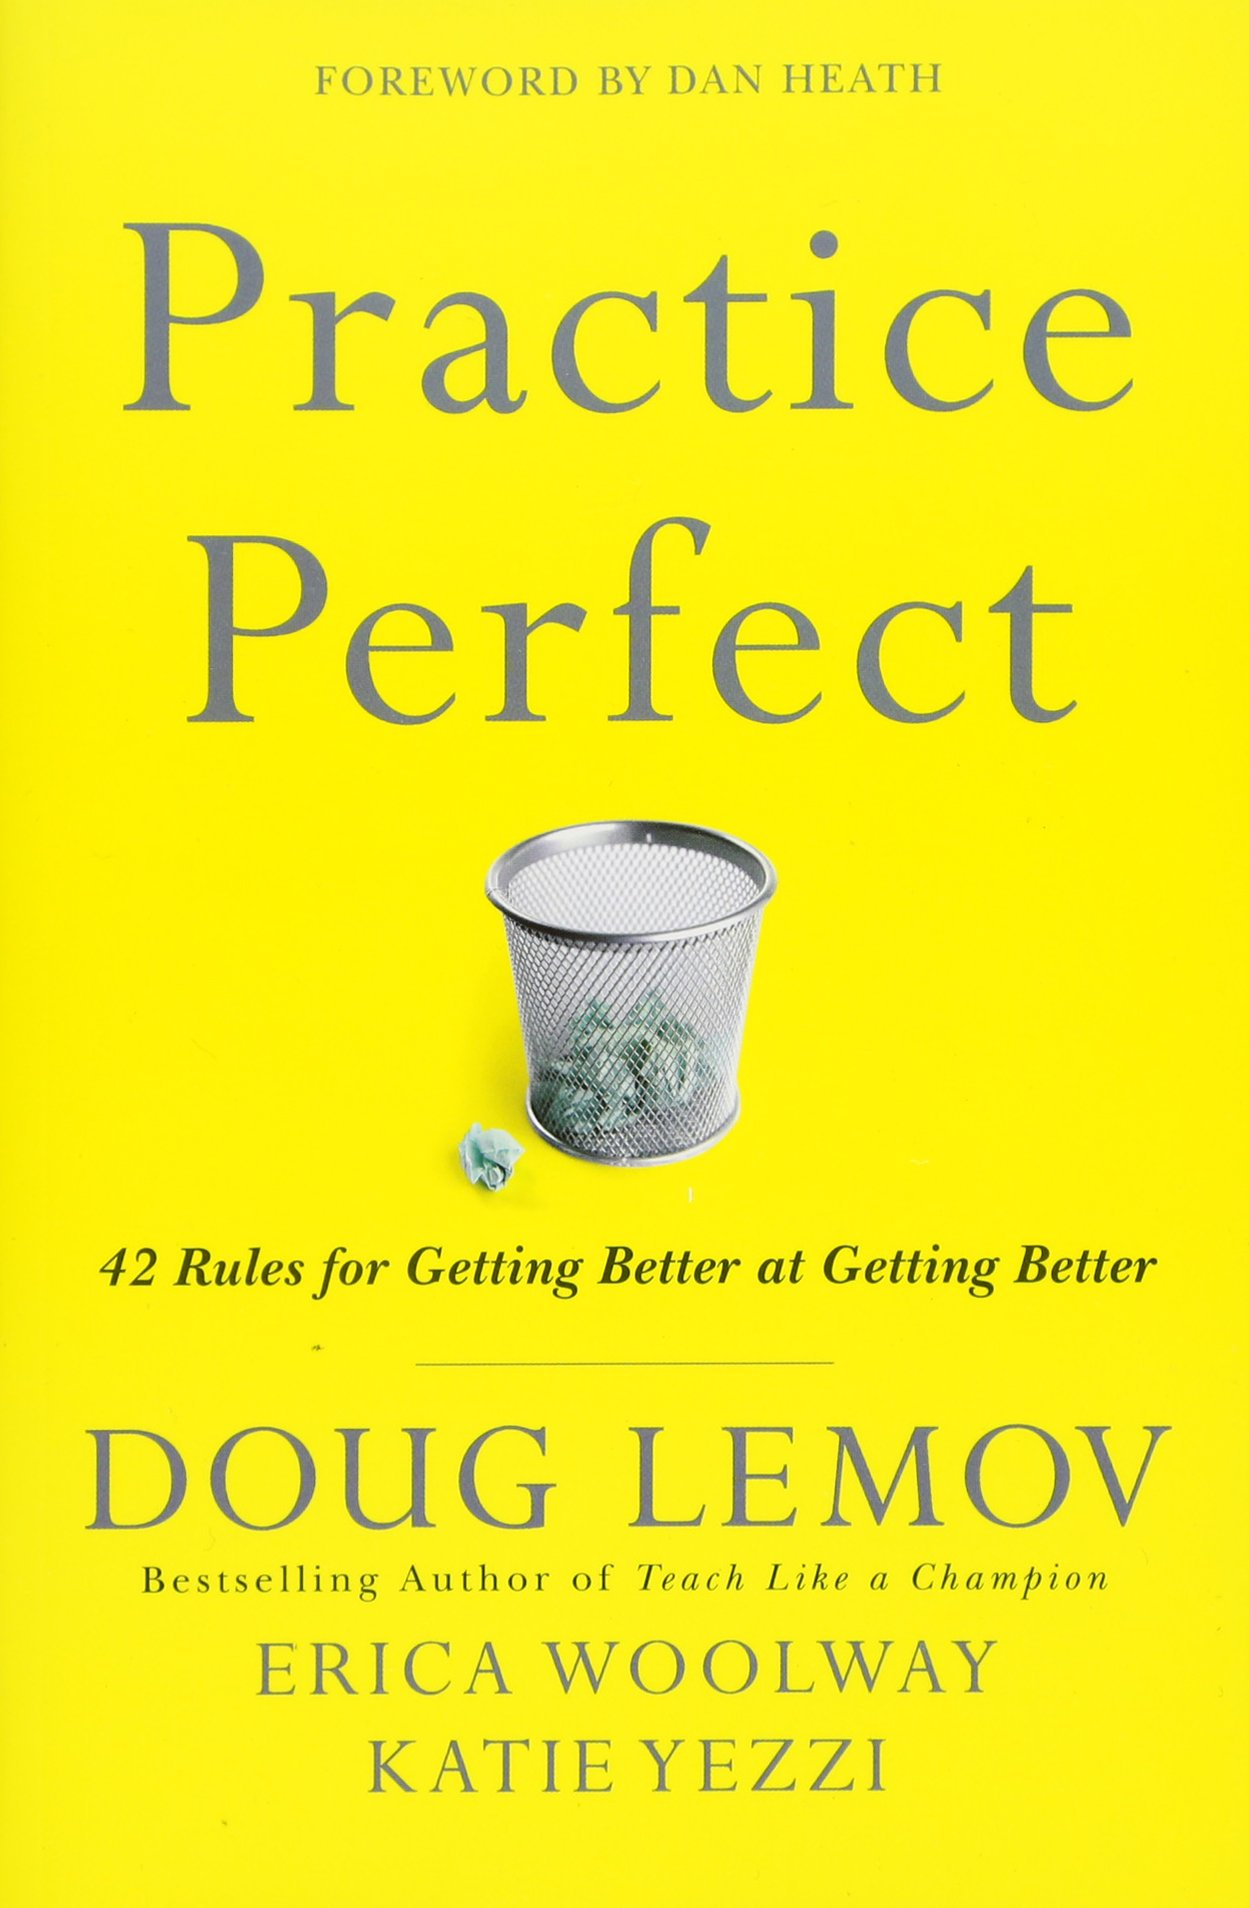 Practice Perfect: 42 Rules for Getting Better at Getting Better pdf